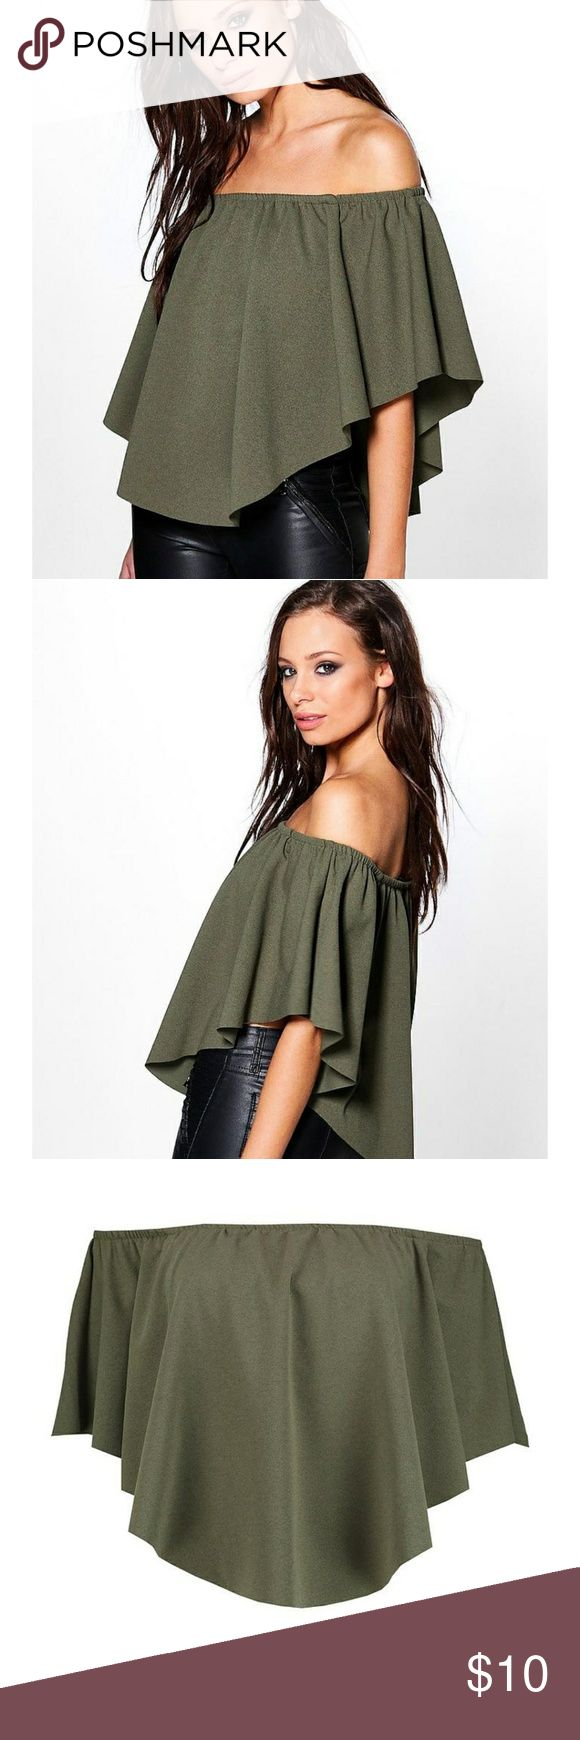 💞SALE💞Double-Layer Bardot Top Army green bardot top Boohoo Tops Blouses